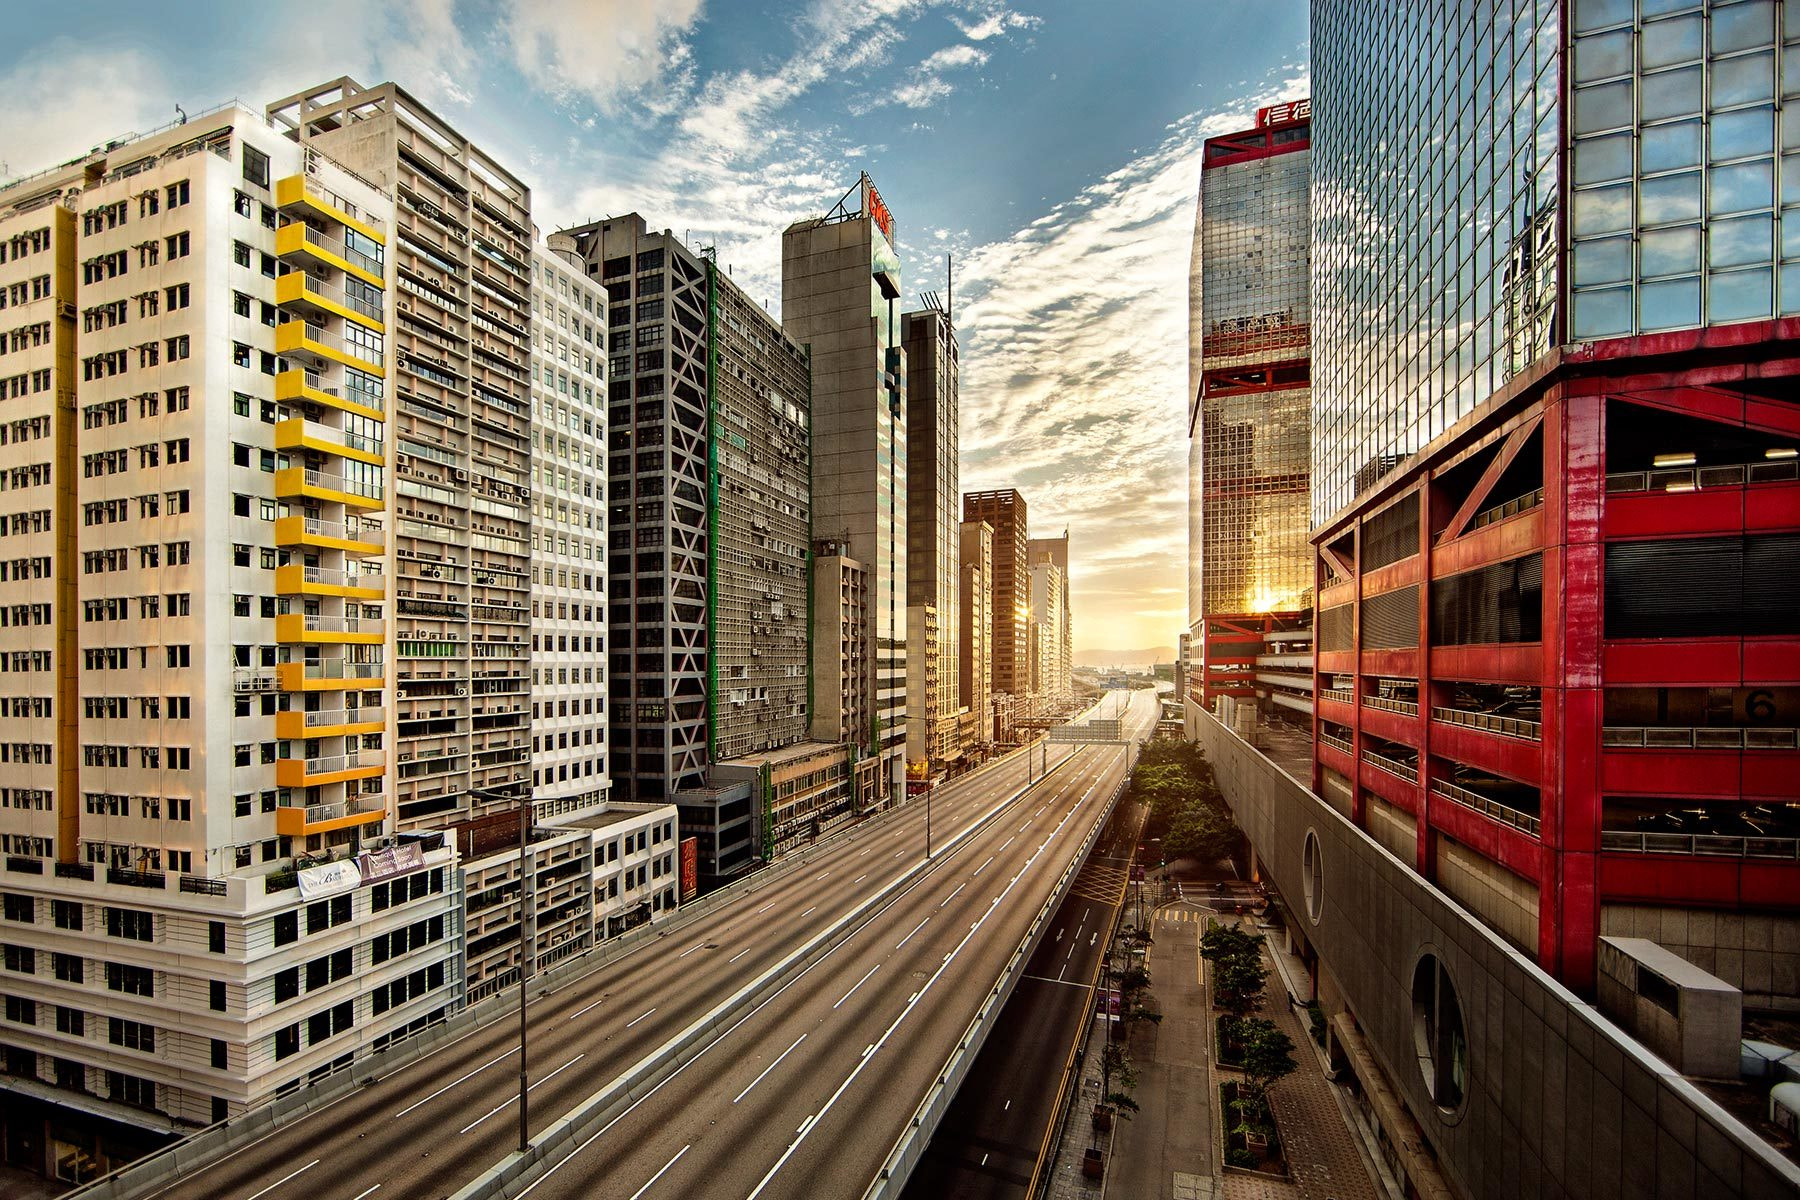 Photograph Connaught Road, Hong Kong by Glenn Meling on 500px